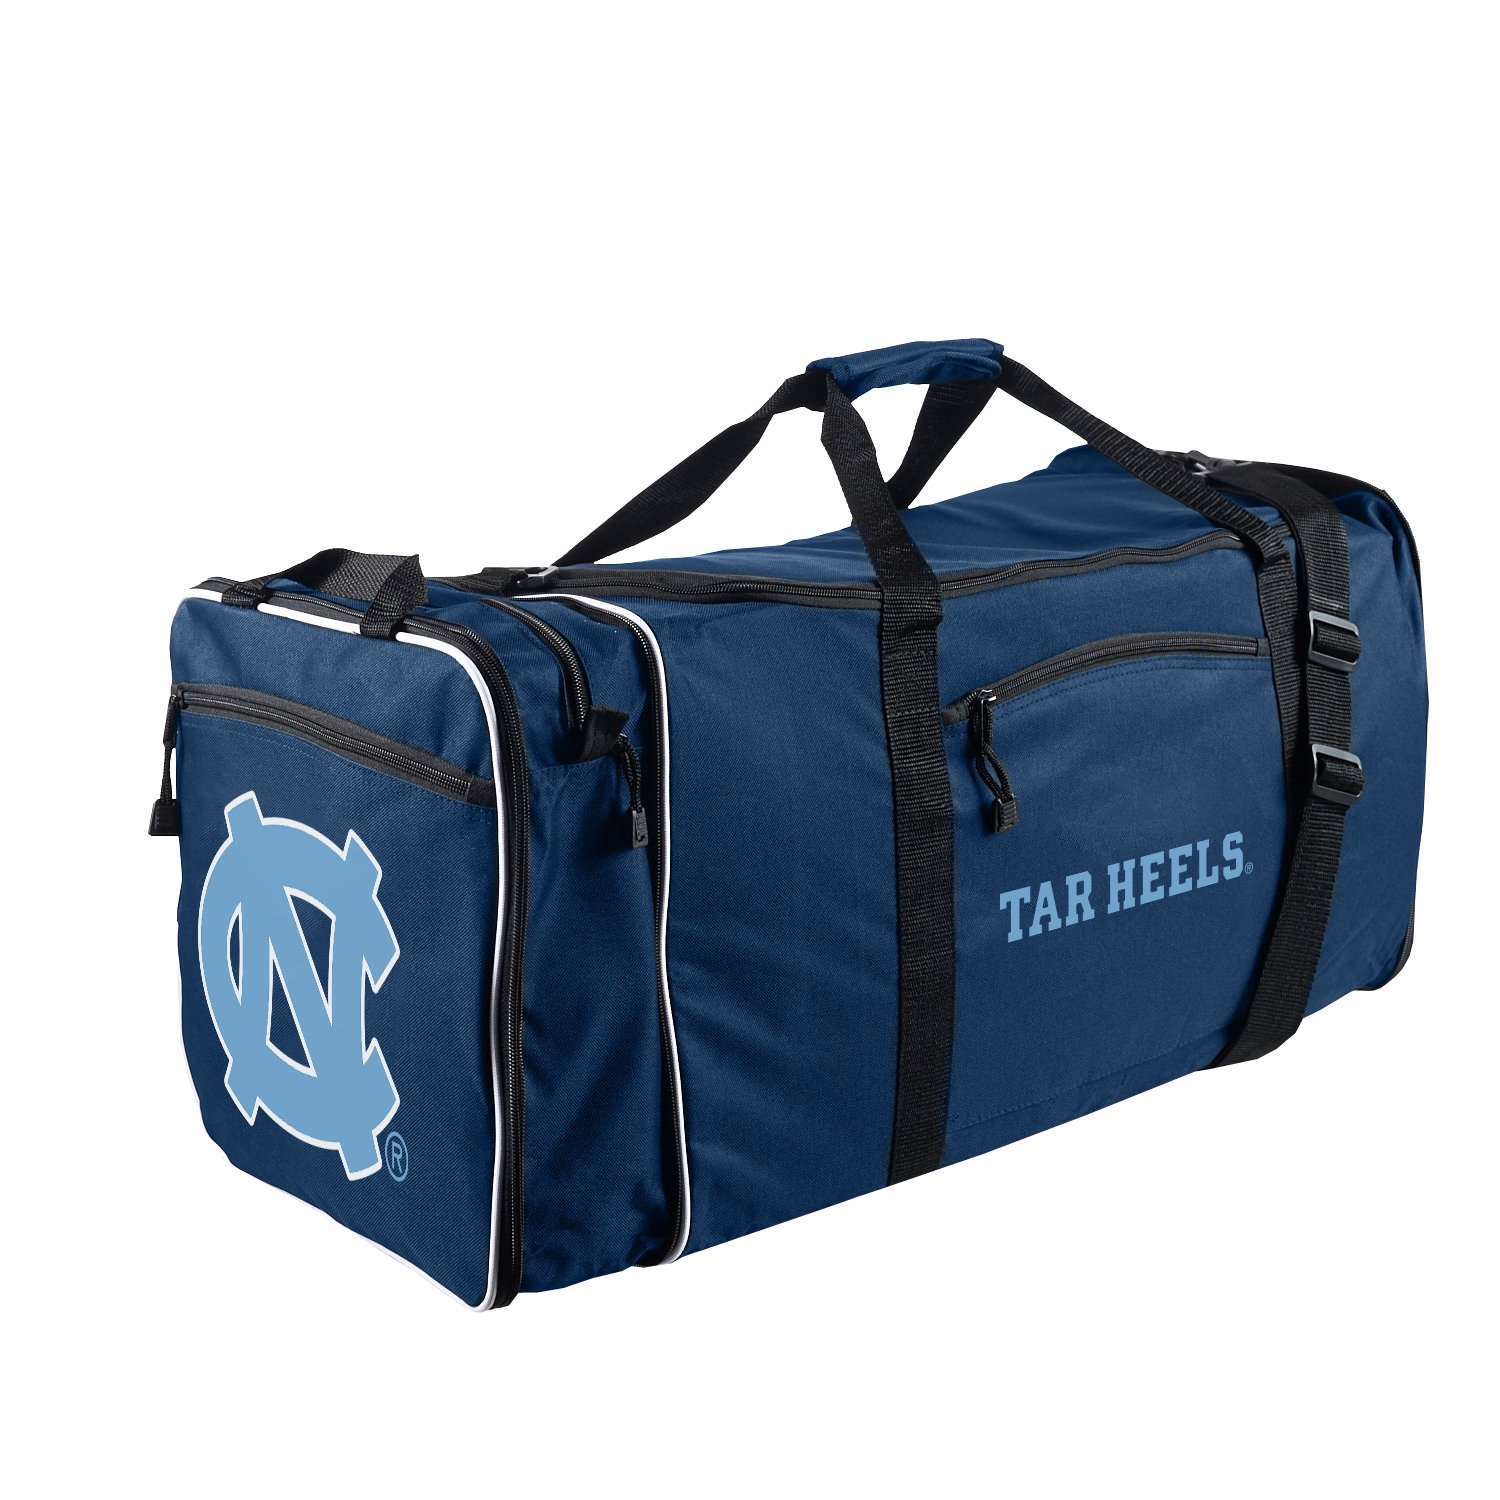 Officially Licensed NCAA North Carolina Tar Heels Steal Duffel Bag by The Northwest Company (Image #2)